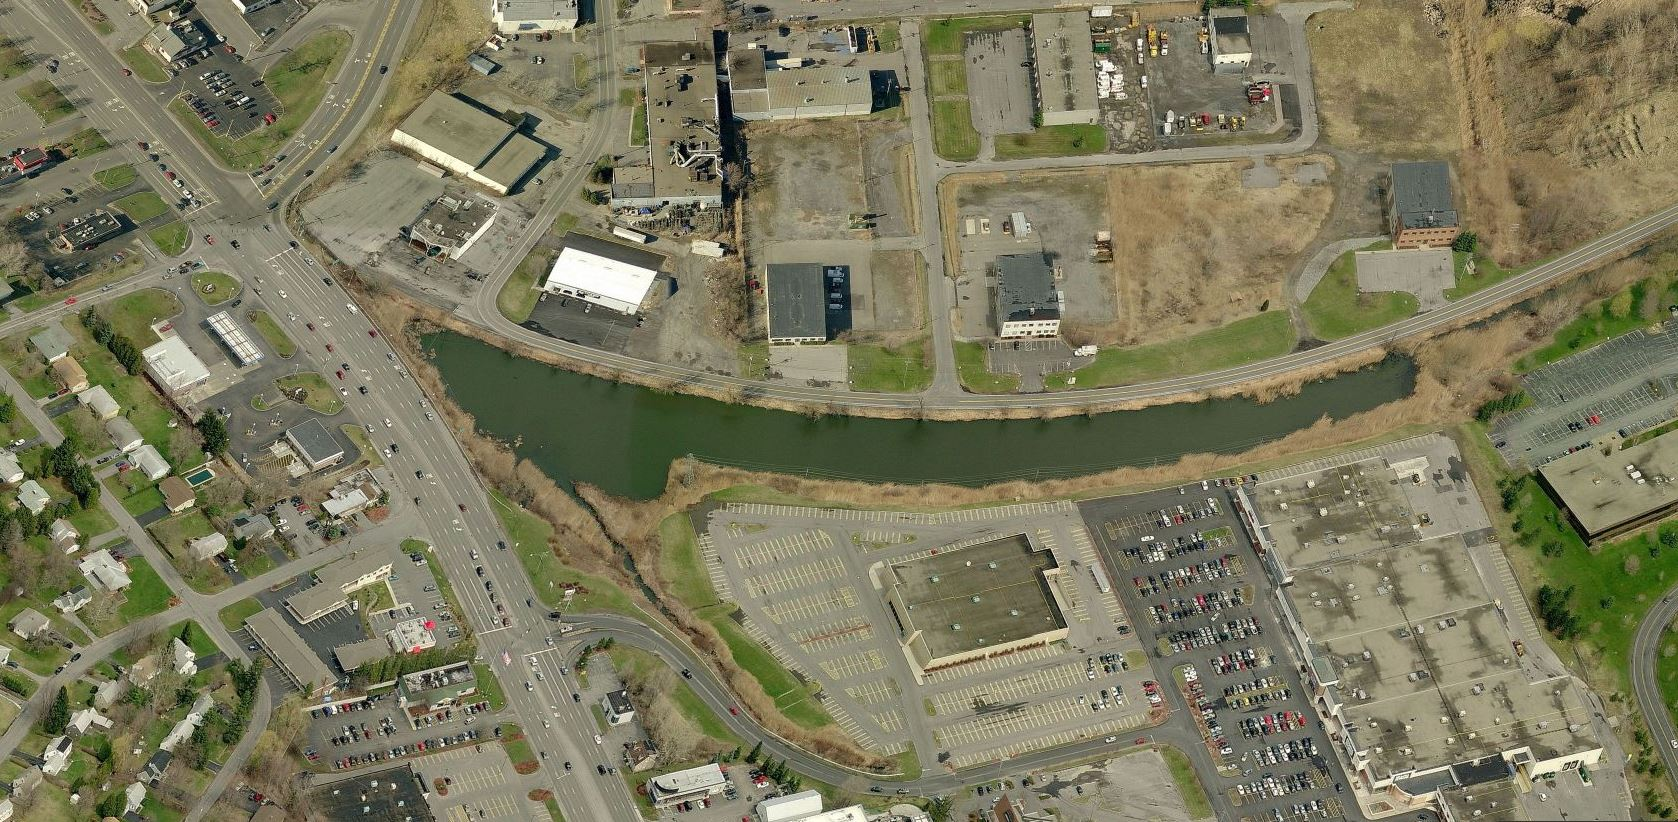 Aerial photograph of the Widewaters Pond (along Towpath Road).Imagine this remnant as the catalyst that helps close the gap in the Canalway Trail! The creation of a well-connected civic space at this site could offer tremendous value to residents, business owners, taxpayers, and visitors alike.